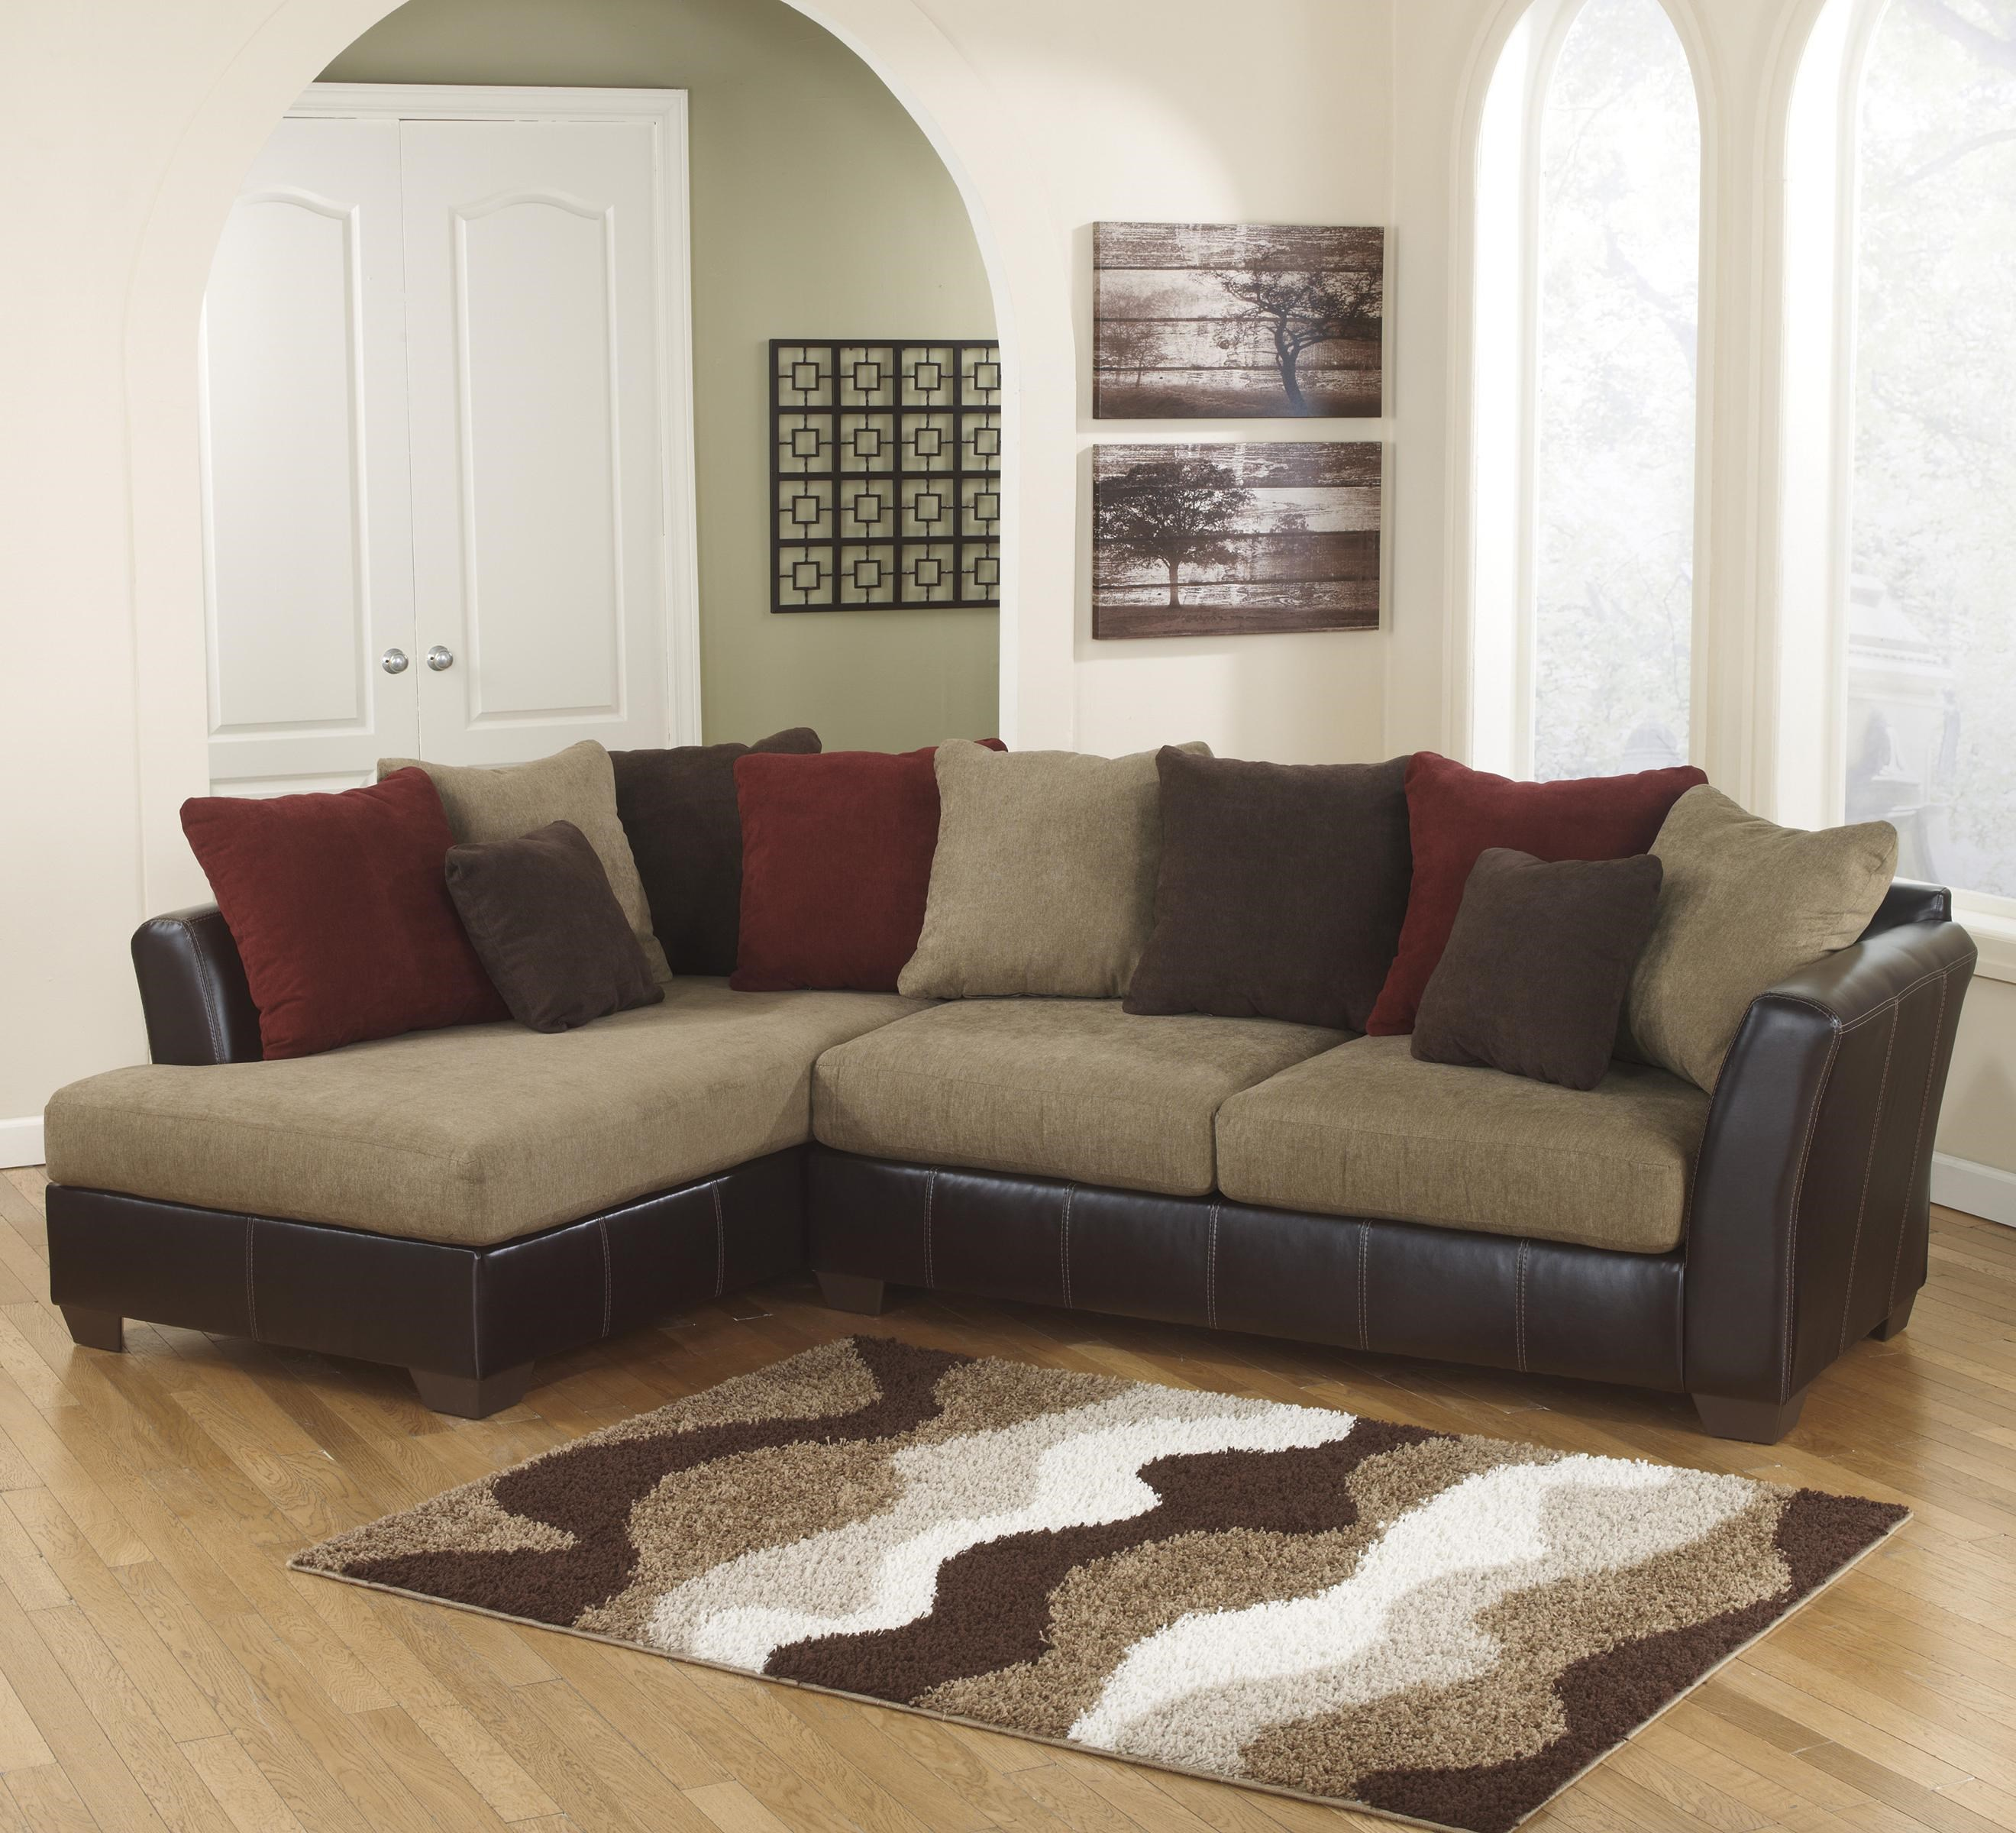 Ashley Furniture Brown Levar Durablend Nailhead Sofa Loveseat Package : ashley sofa sectional - Sectionals, Sofas & Couches